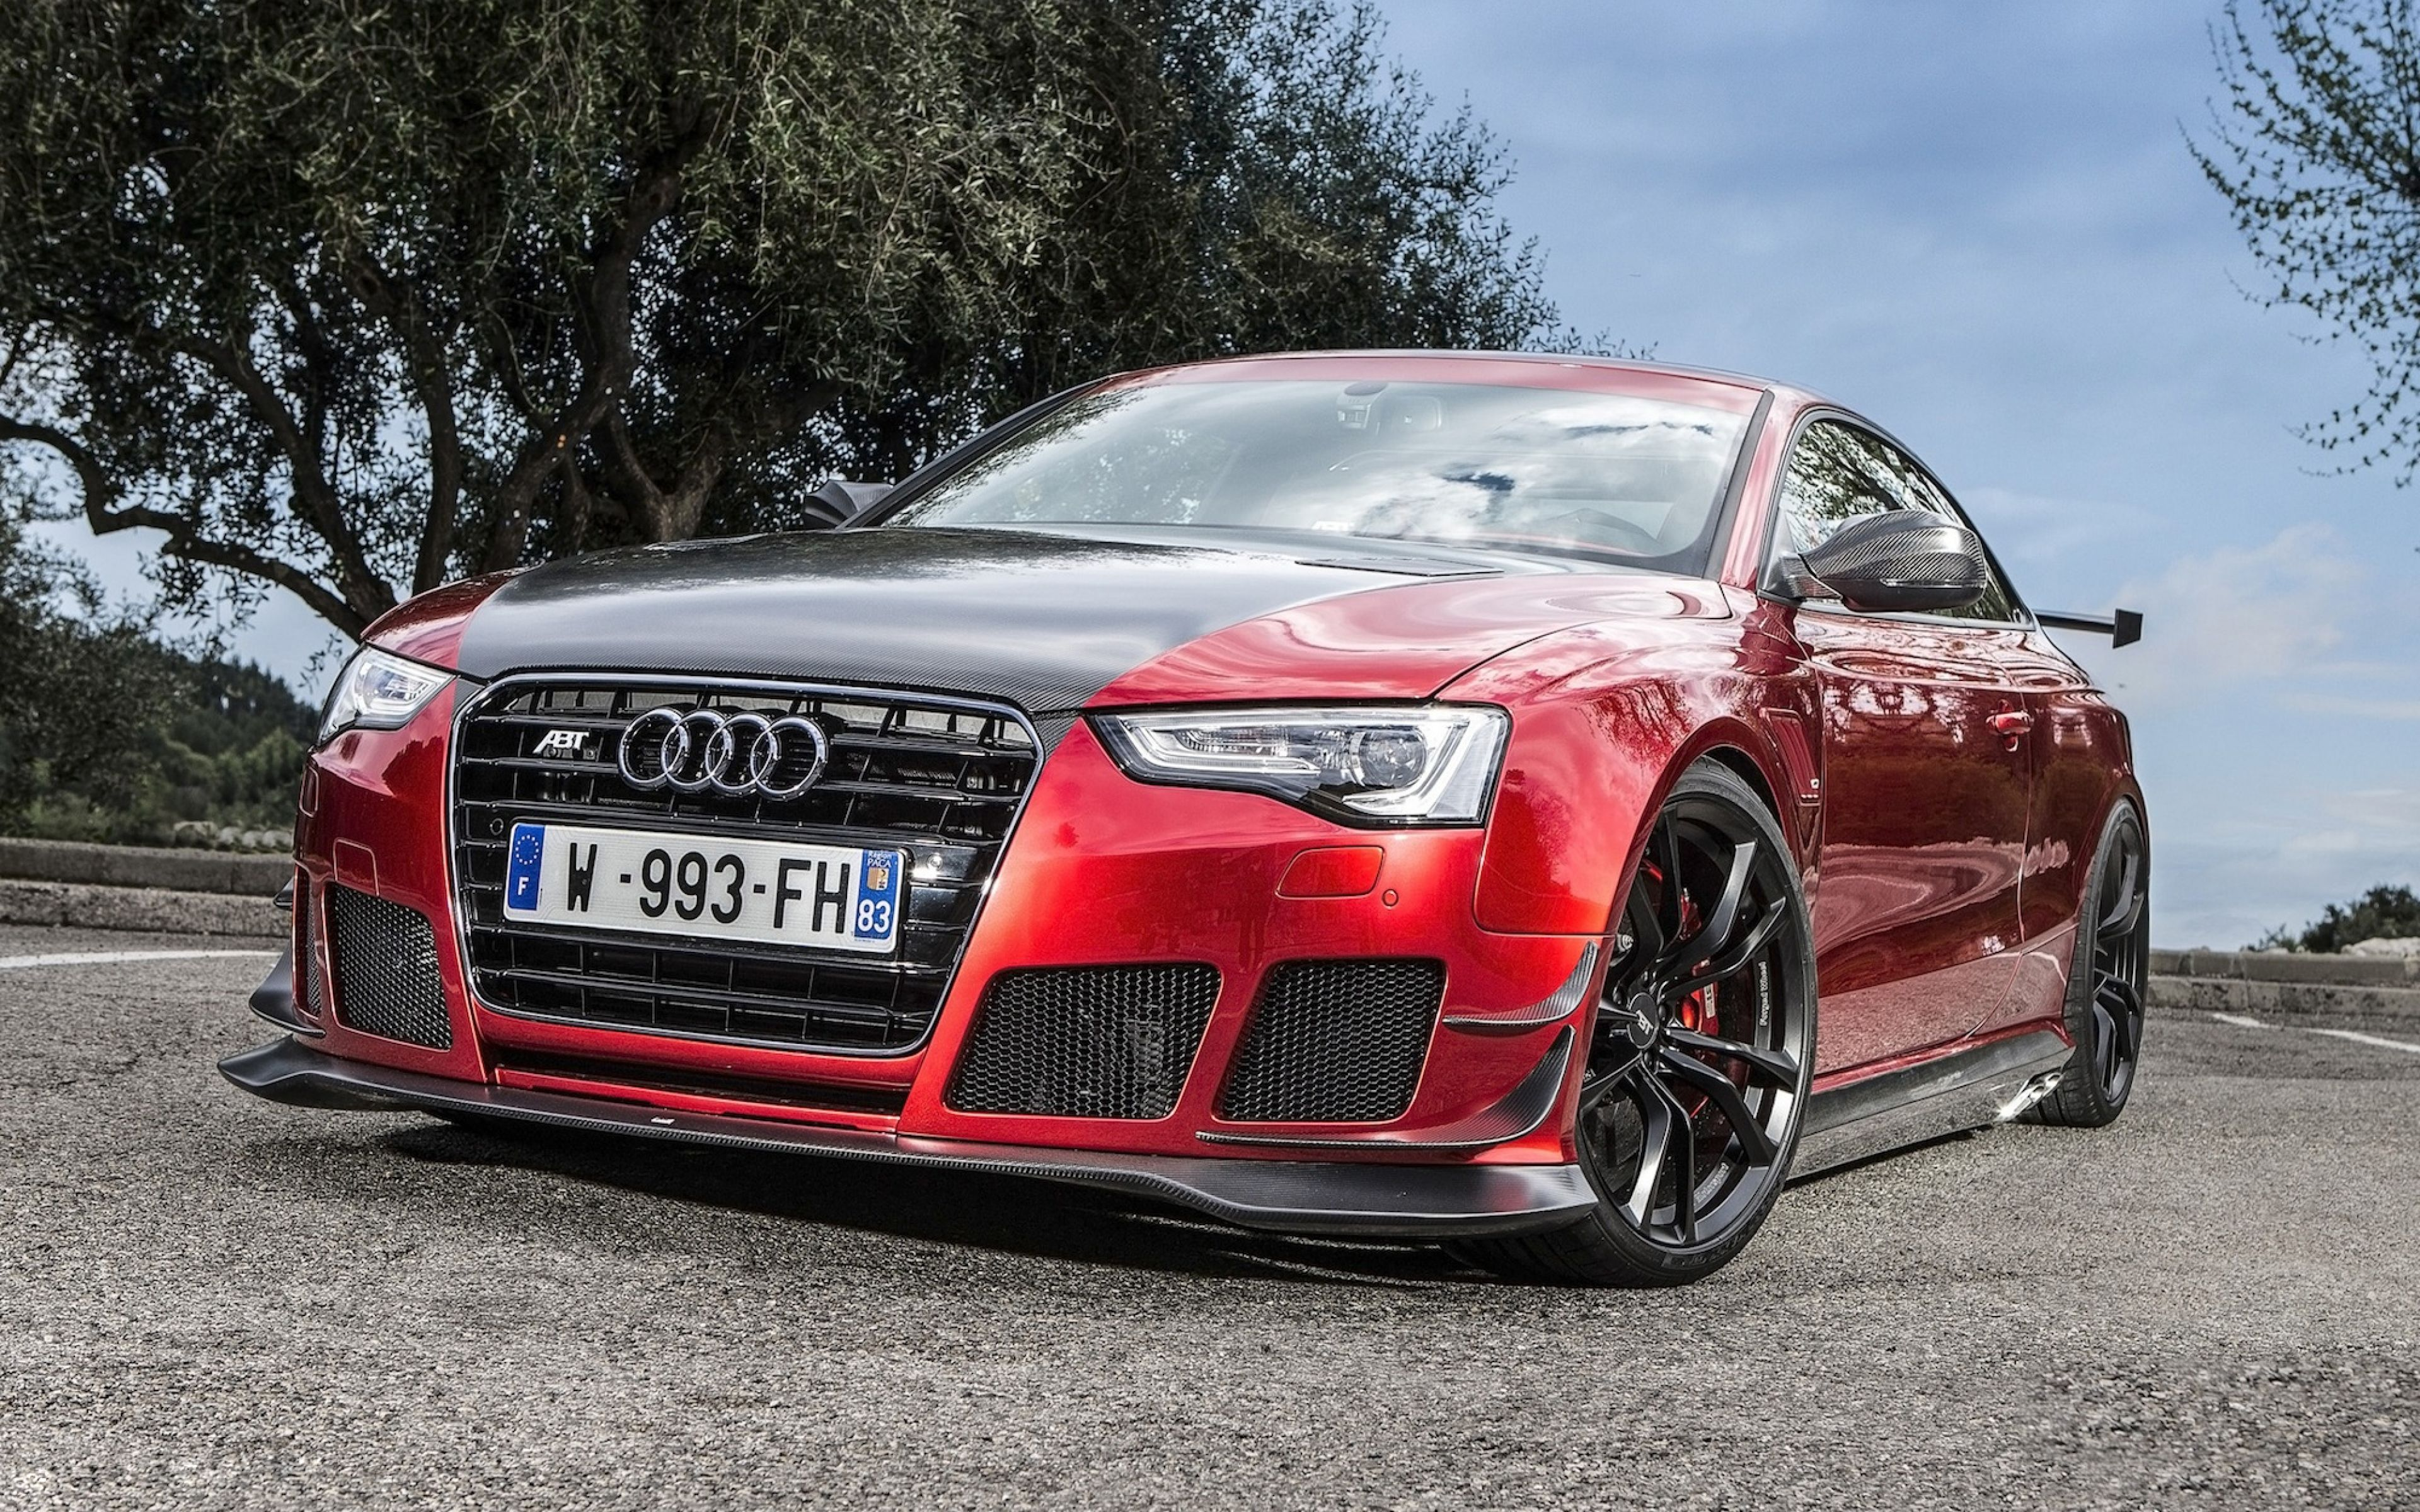 3840x2400 Wallpaper Audi Rs5 R Tuning Front View